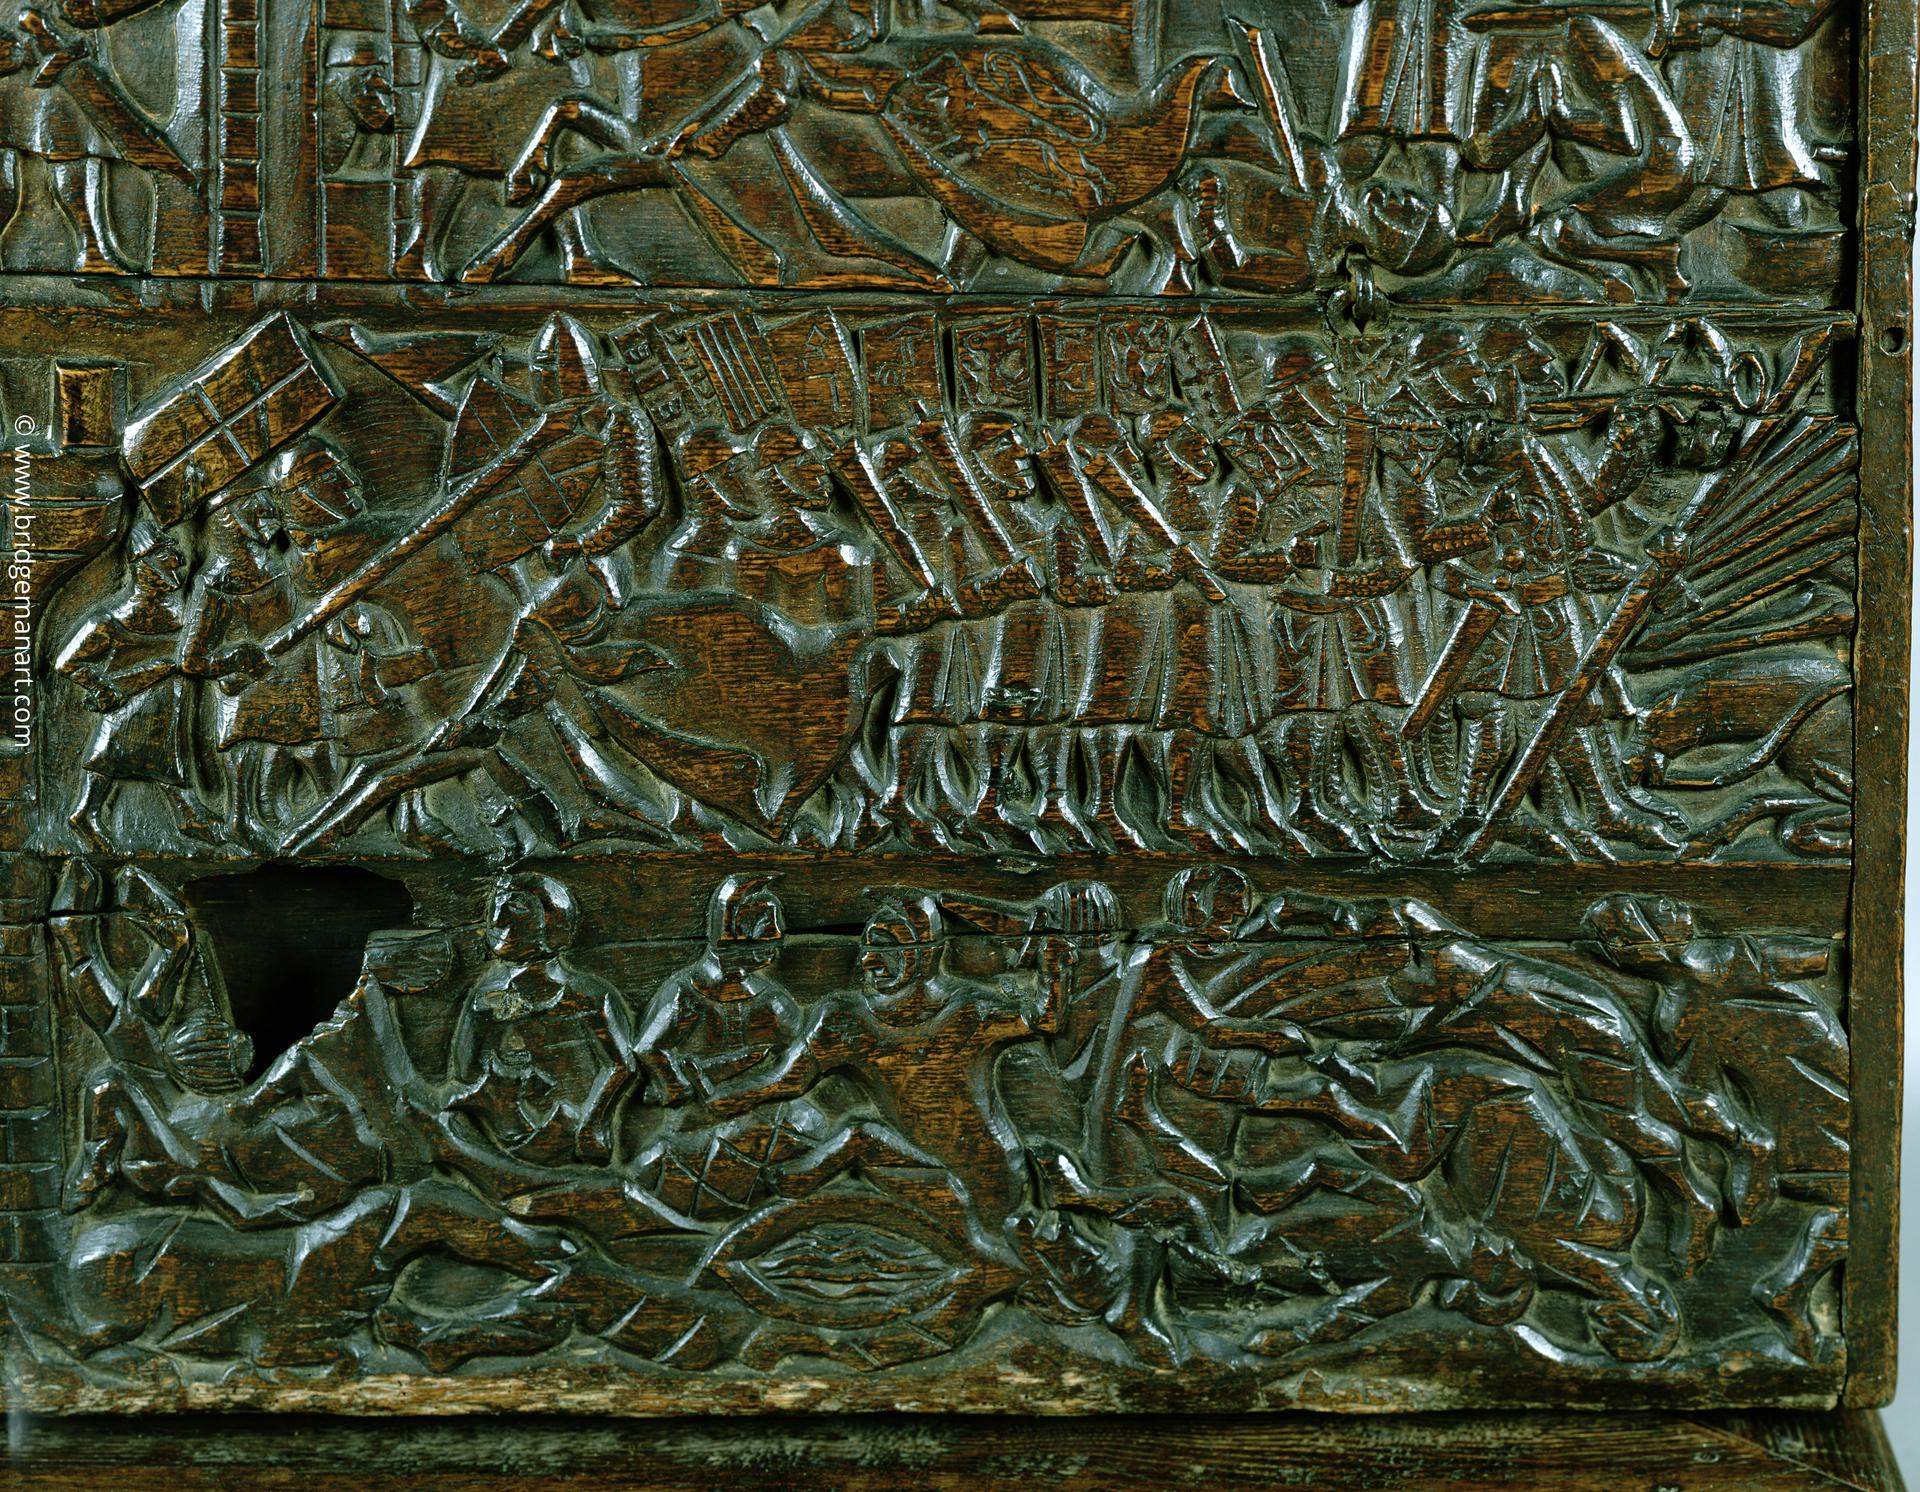 The Courtrai Chest depicting the Flemish line of battle during the Battle of the Golden Spurs, fought at Courtrai in 1302 (wood) (detail), Flemish School, (14th century) / © Courtesy of the Warden and Scholars of New College, Oxford / Bridgeman Images